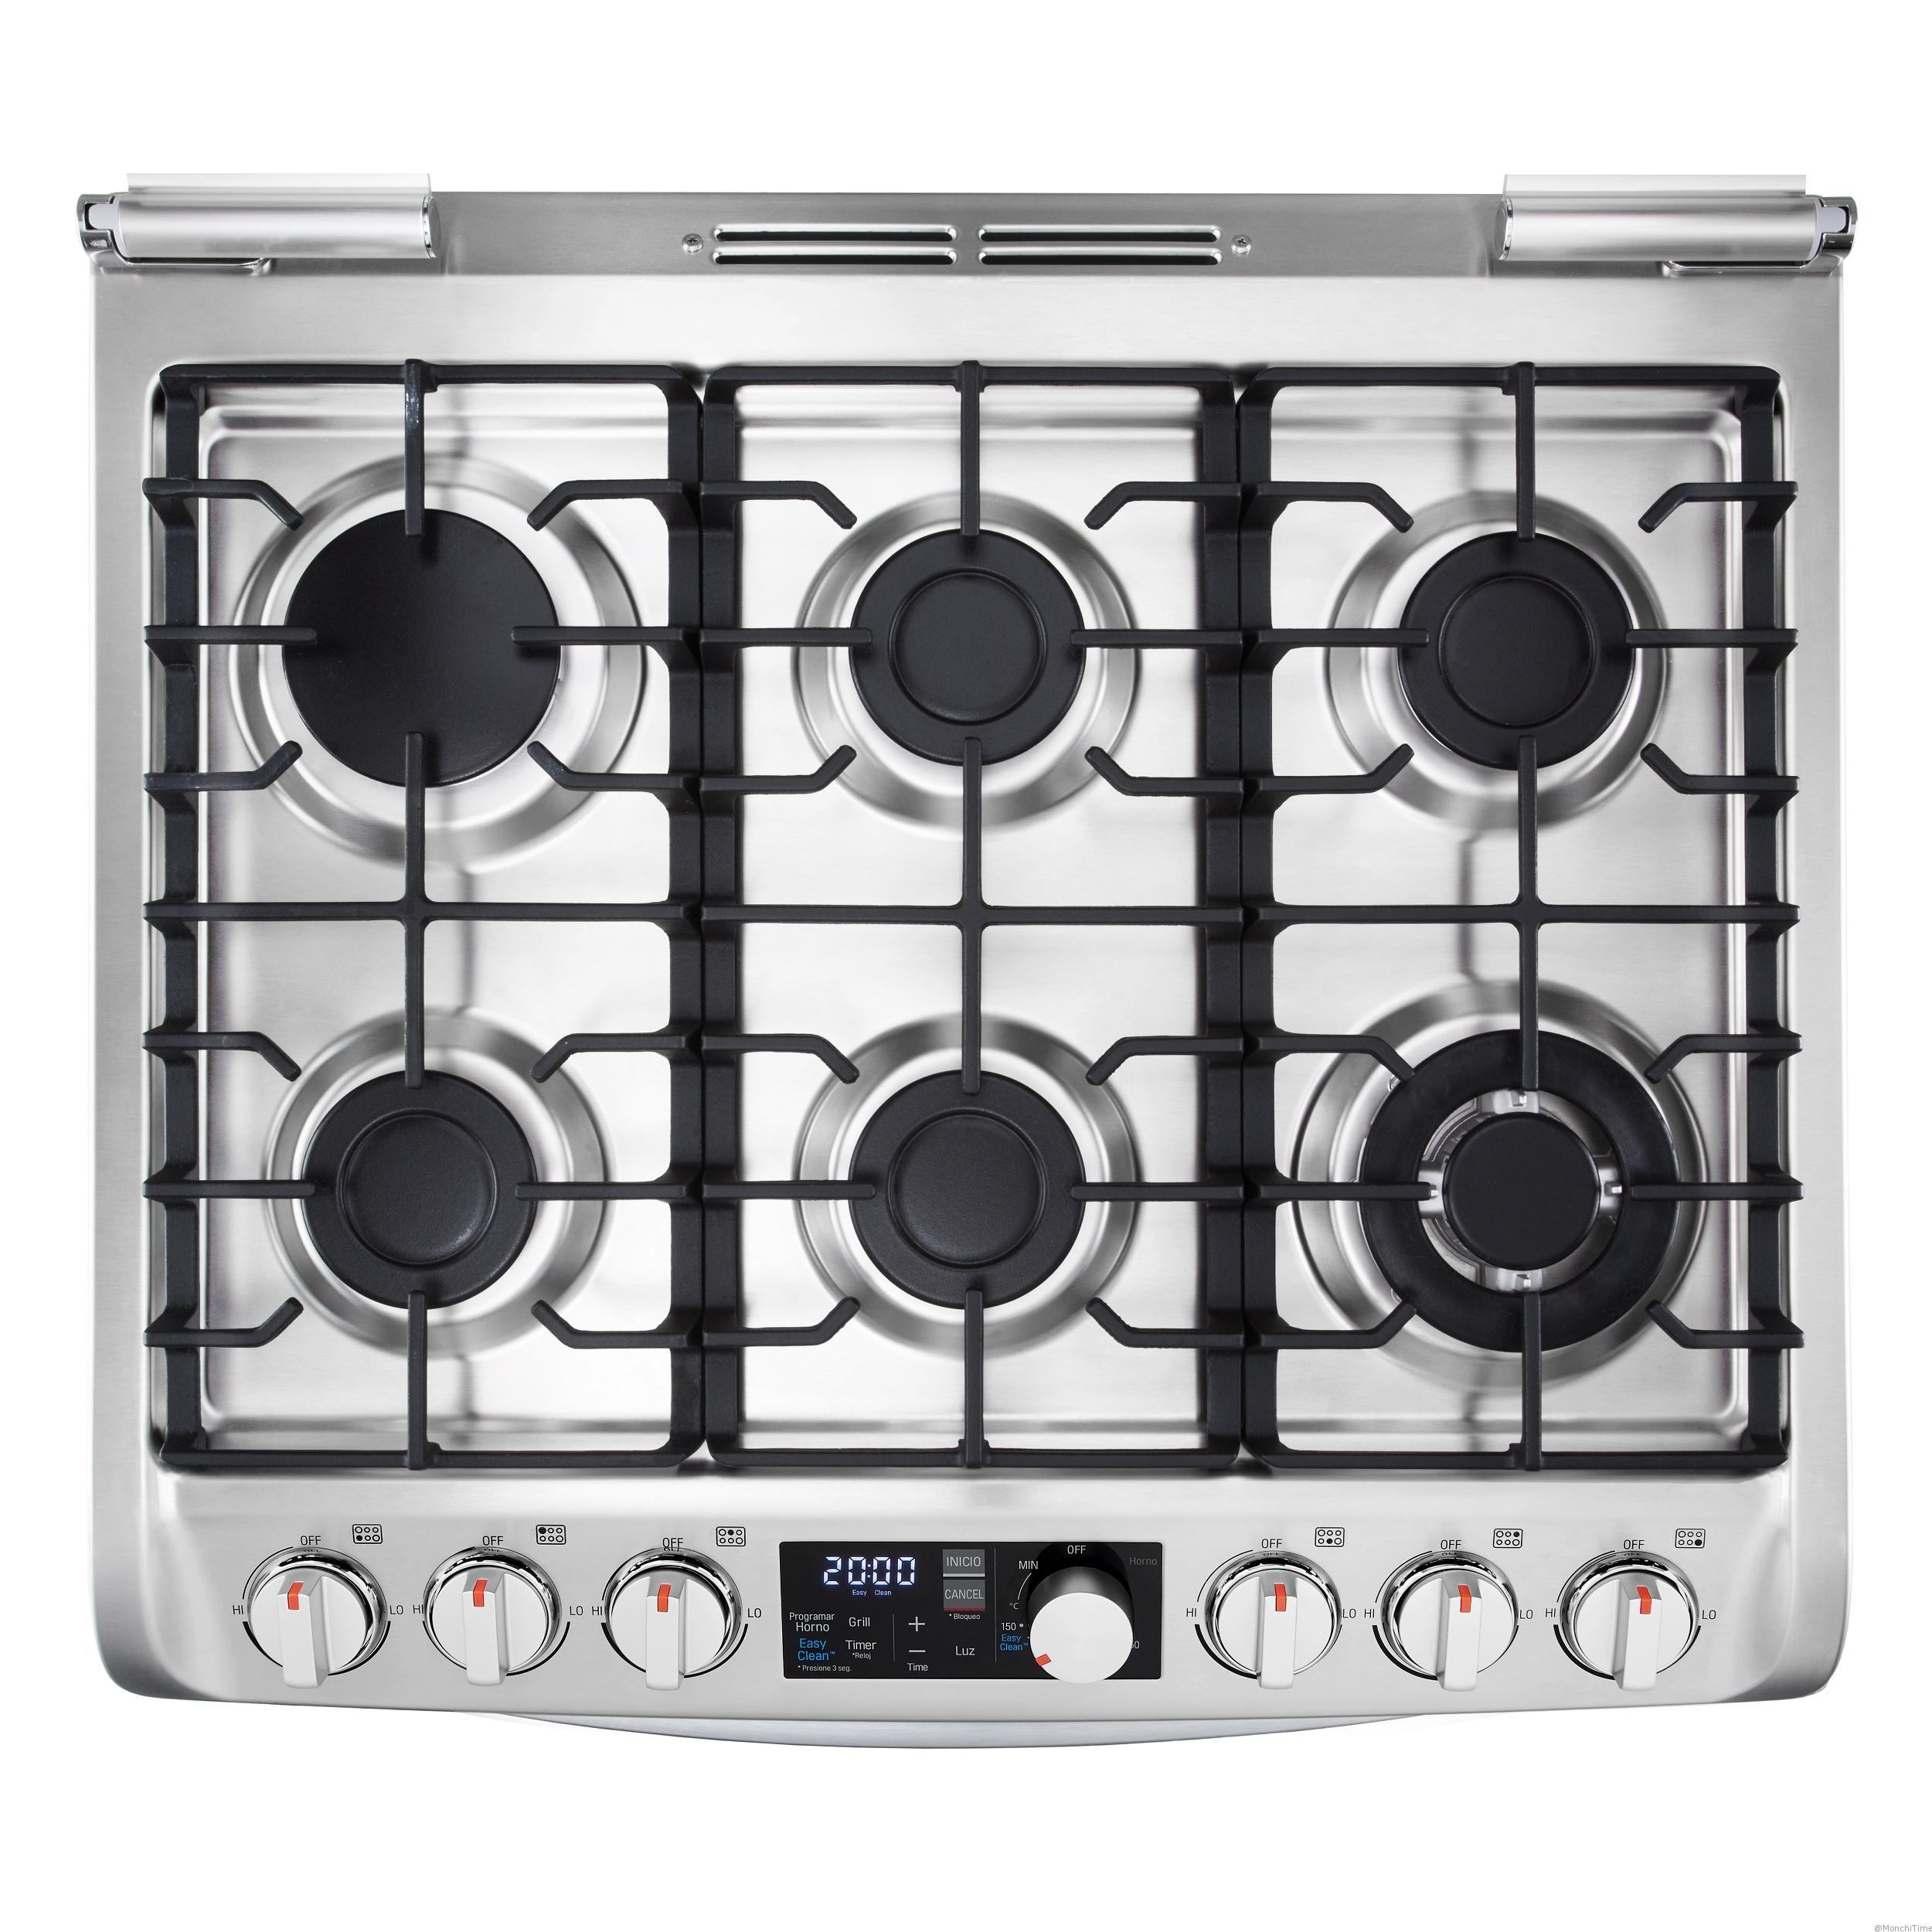 7. New Gas Oven_CHROME_TOP